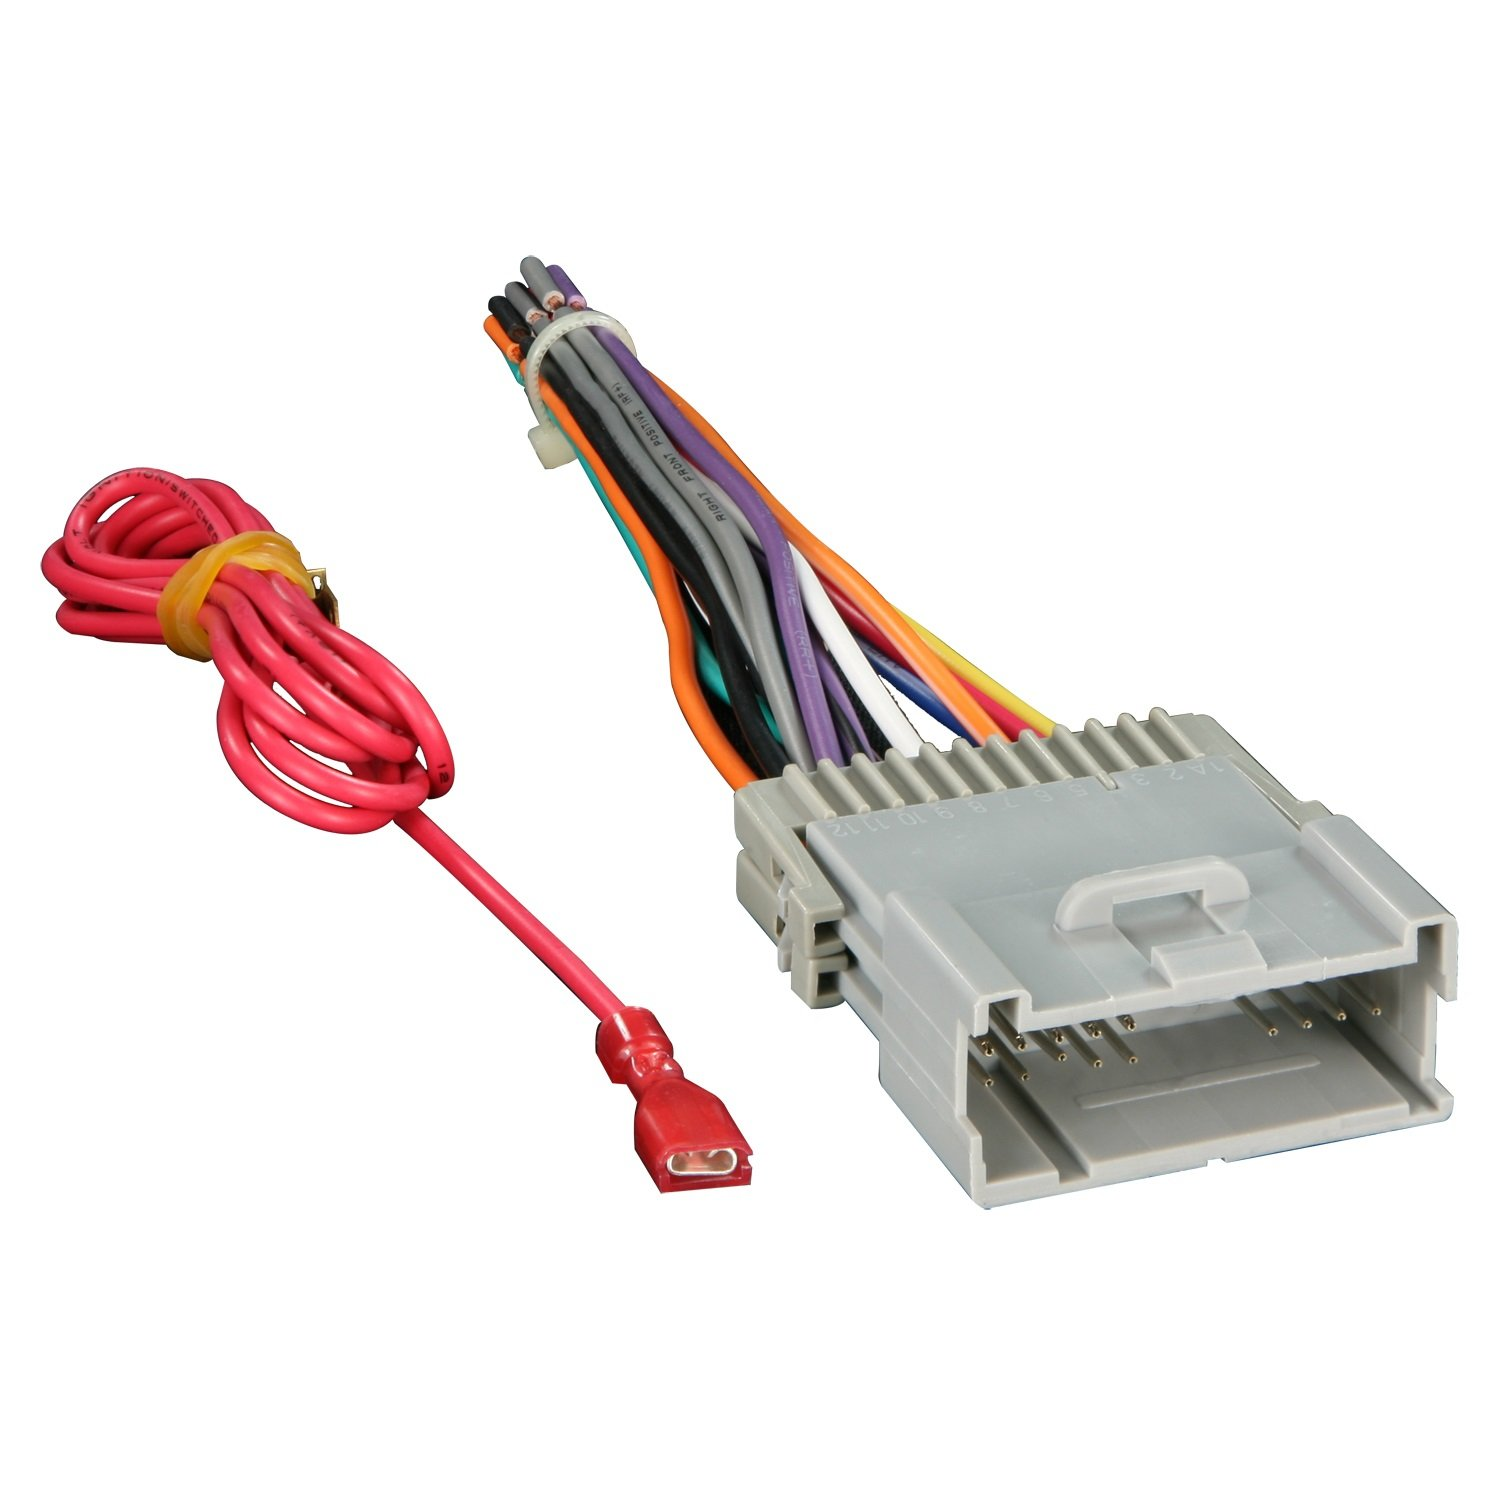 61eewxp9orL._SL1500_ amazon com metra 70 2003 radio wiring harness for gm 98 08 what wiring harness do i need for my car at cos-gaming.co